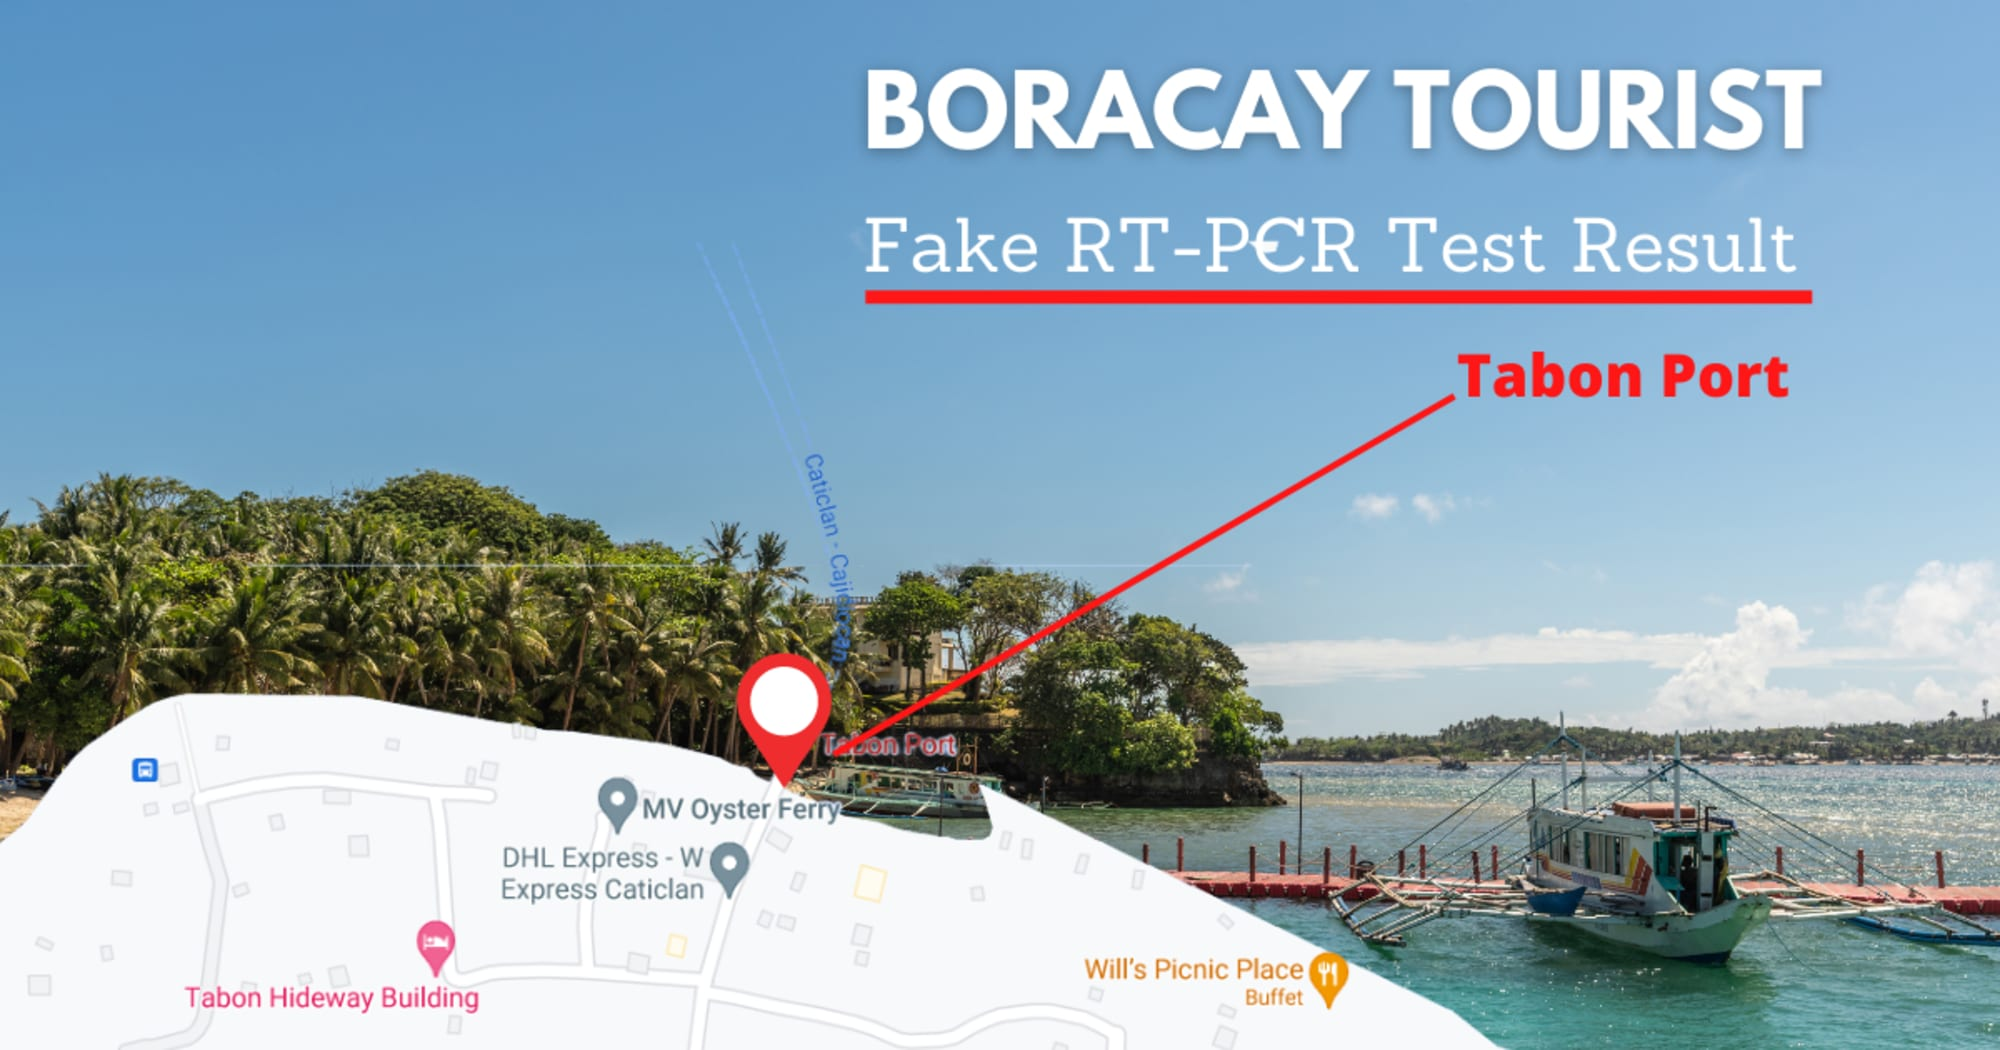 4 Boracay tourists apprehended at Tabon Port Caticlan for tampering their RT-PCR Test